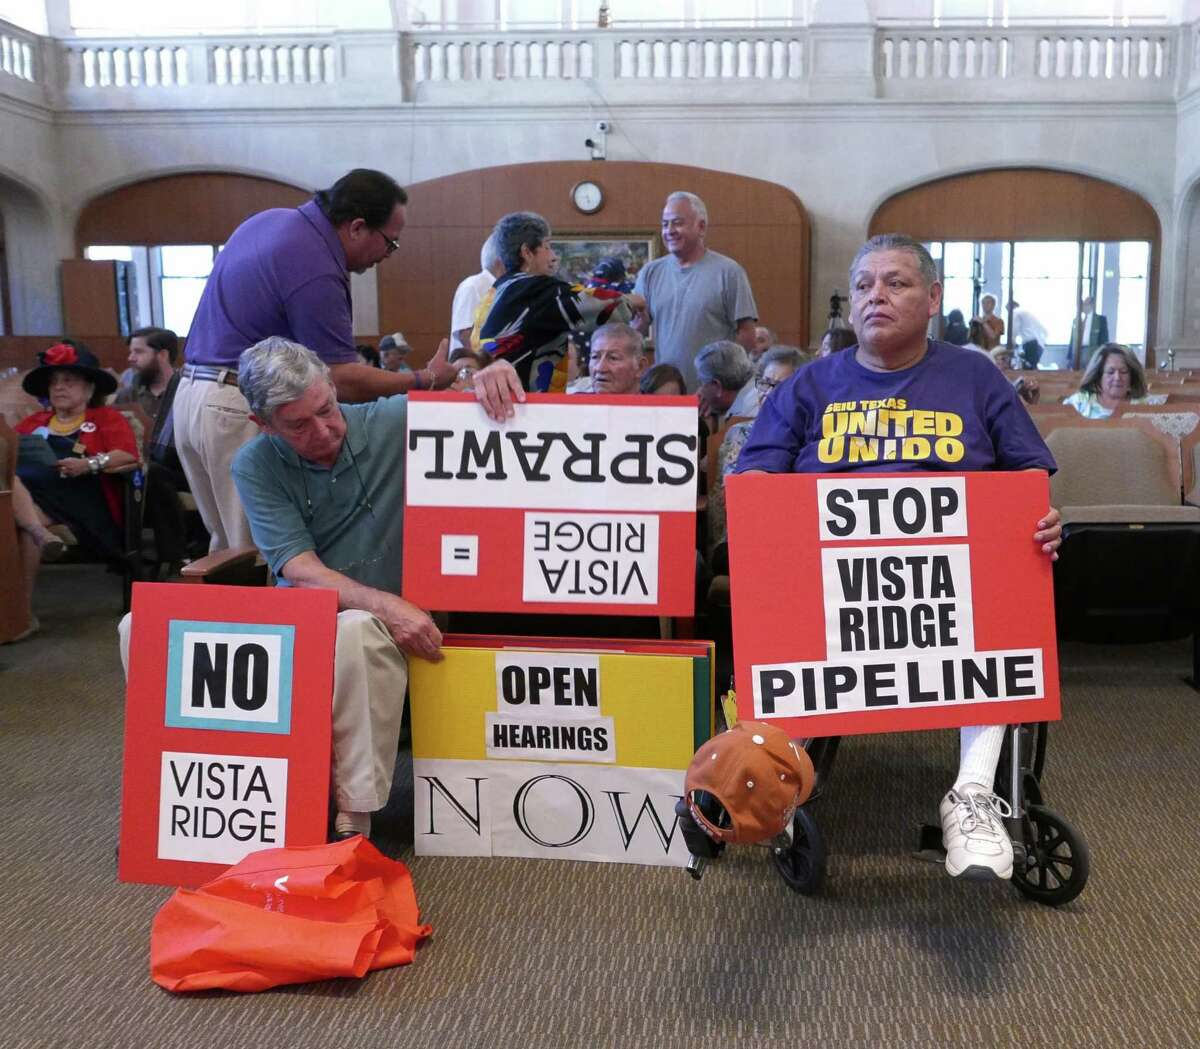 Arturo Hernandez, right, attends City Council's last budget meeting of the year on Wednesday, September 2, 2015. A resident of West San Antonio, he said that streetlights and the proposed Vista Ridge water pipeline are of concern to him. Members of the Texas Organizing Project, SEIU Texas, Esperanza Peace & Justice Center, Southwest Workers Union and West End Hope In Action Organization held a rally outside Council chambers prior to the meeting to advocate for funding for street lights, sidewalks, roads, drainage, and home rehabilitation.